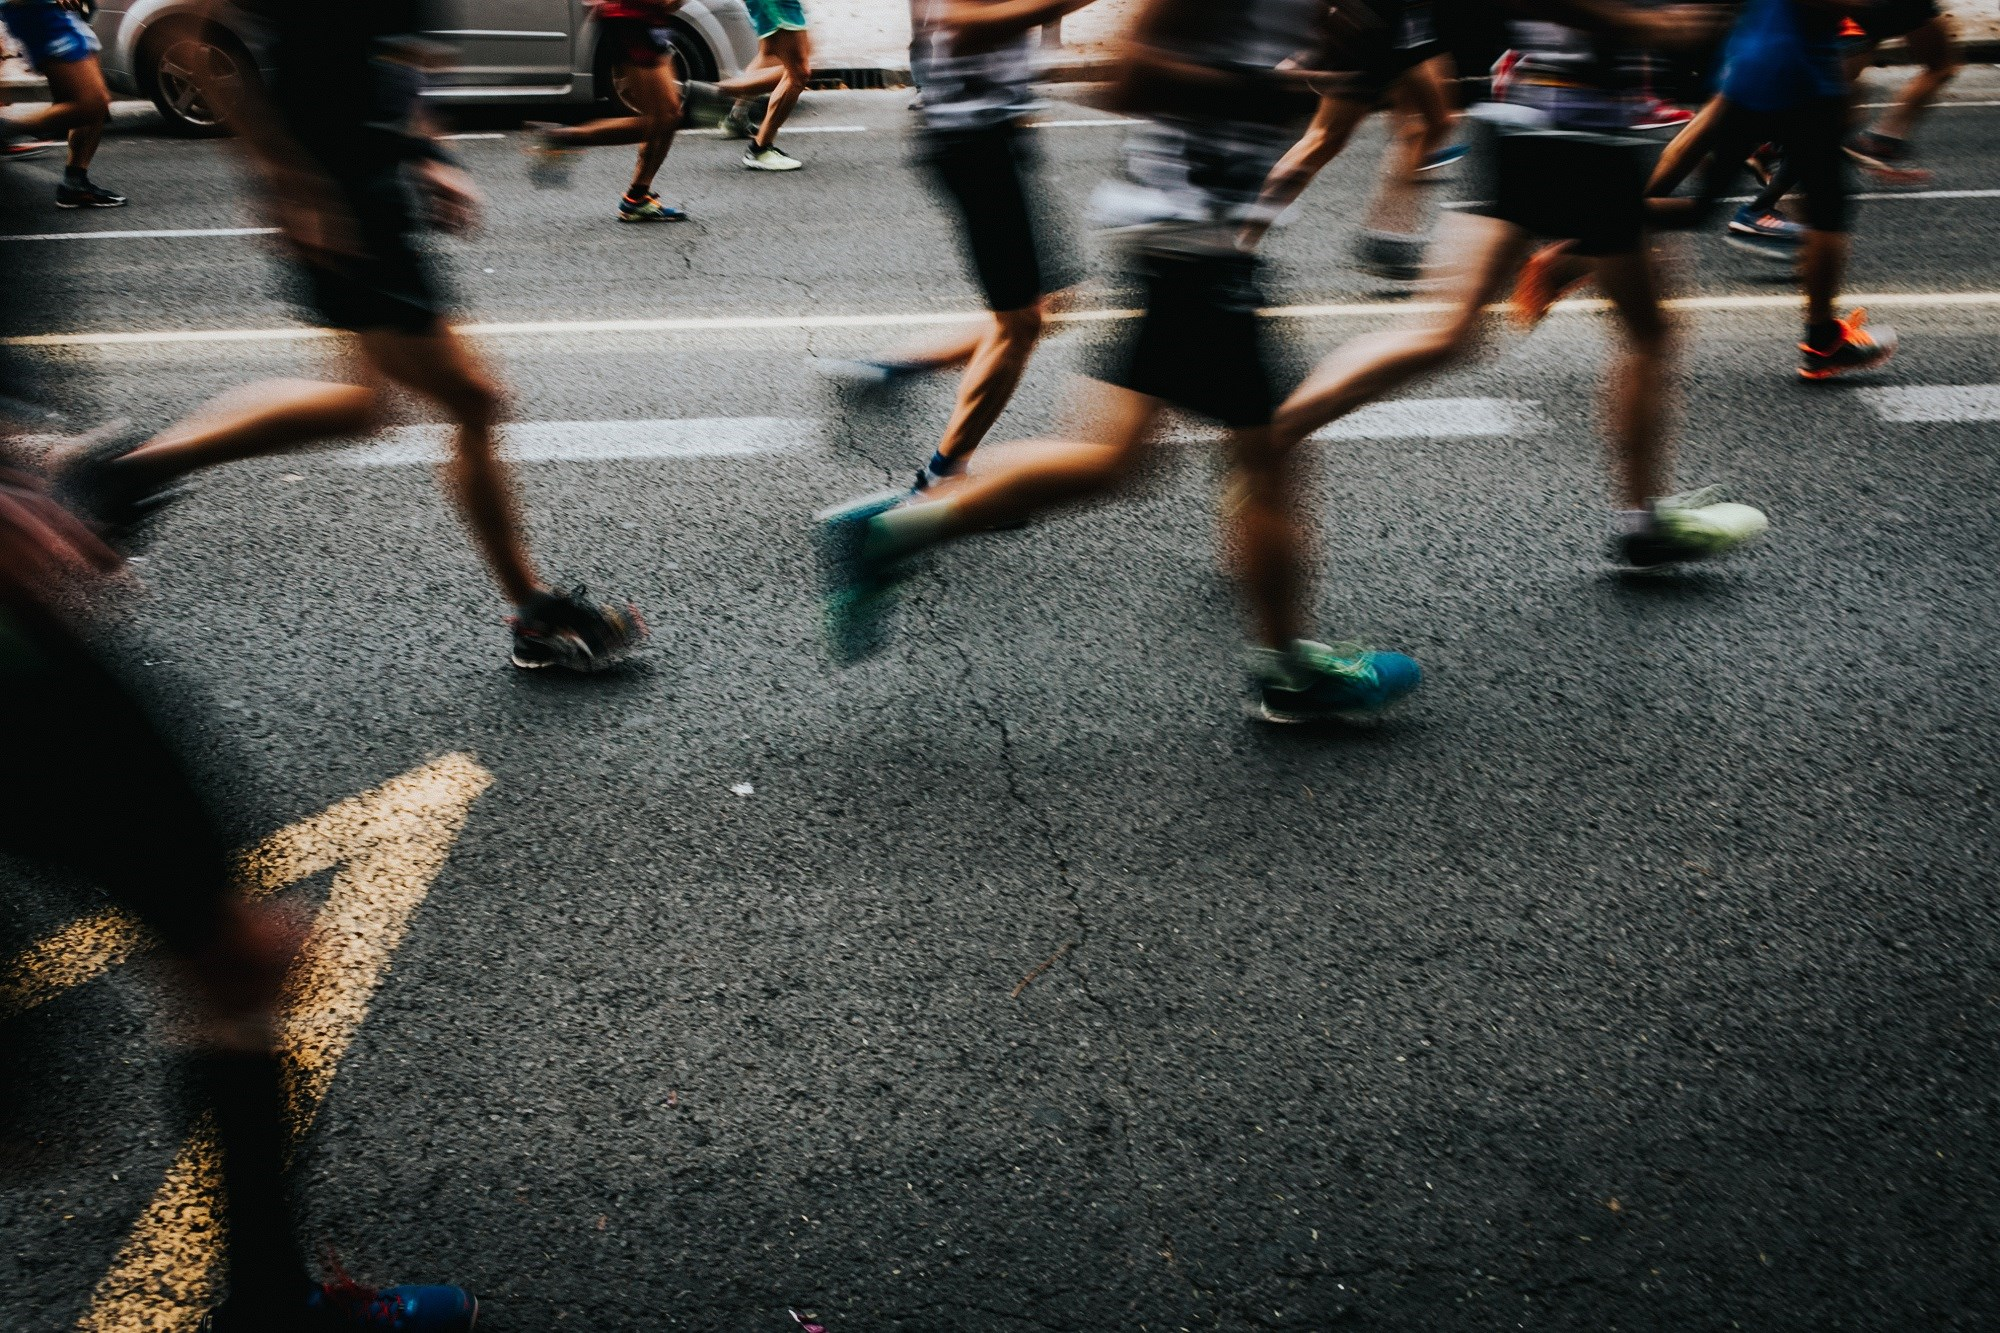 Elevated Troponin Levels Found in Marathon Runners After Endurance Competitions